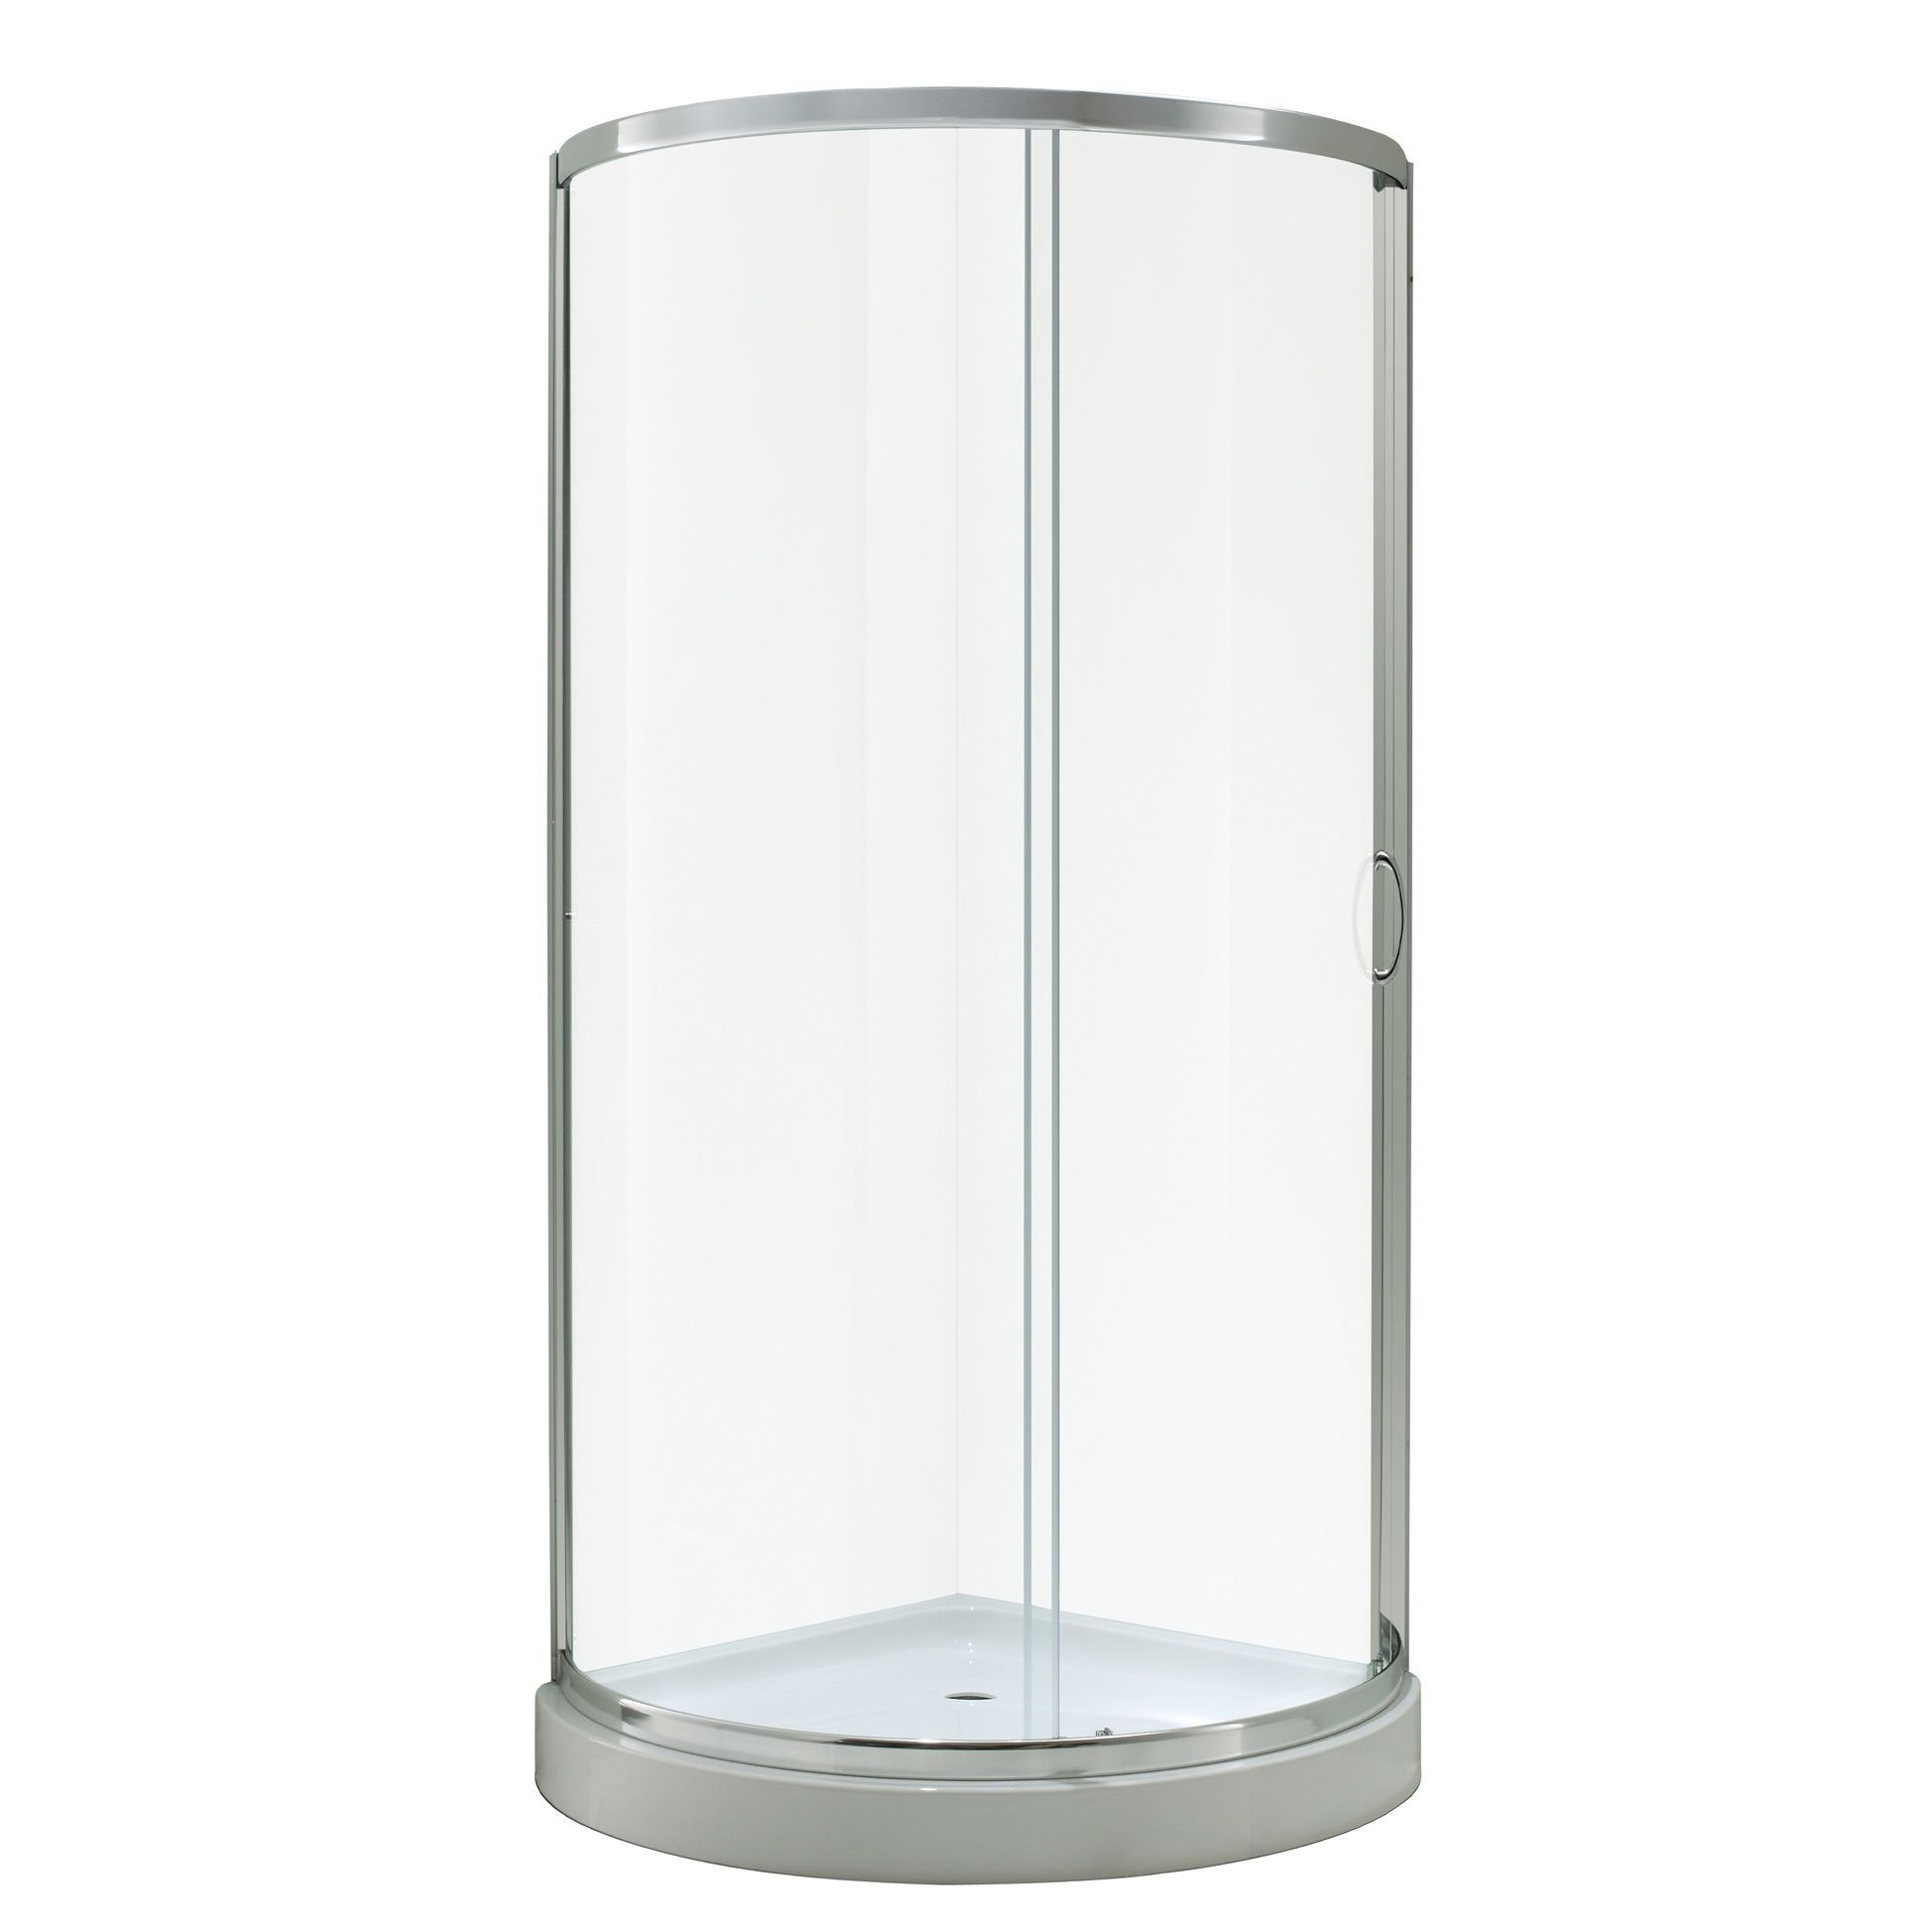 Ove Decors Breeze 36 Inch Shower Enclosure Kit With Paris Base